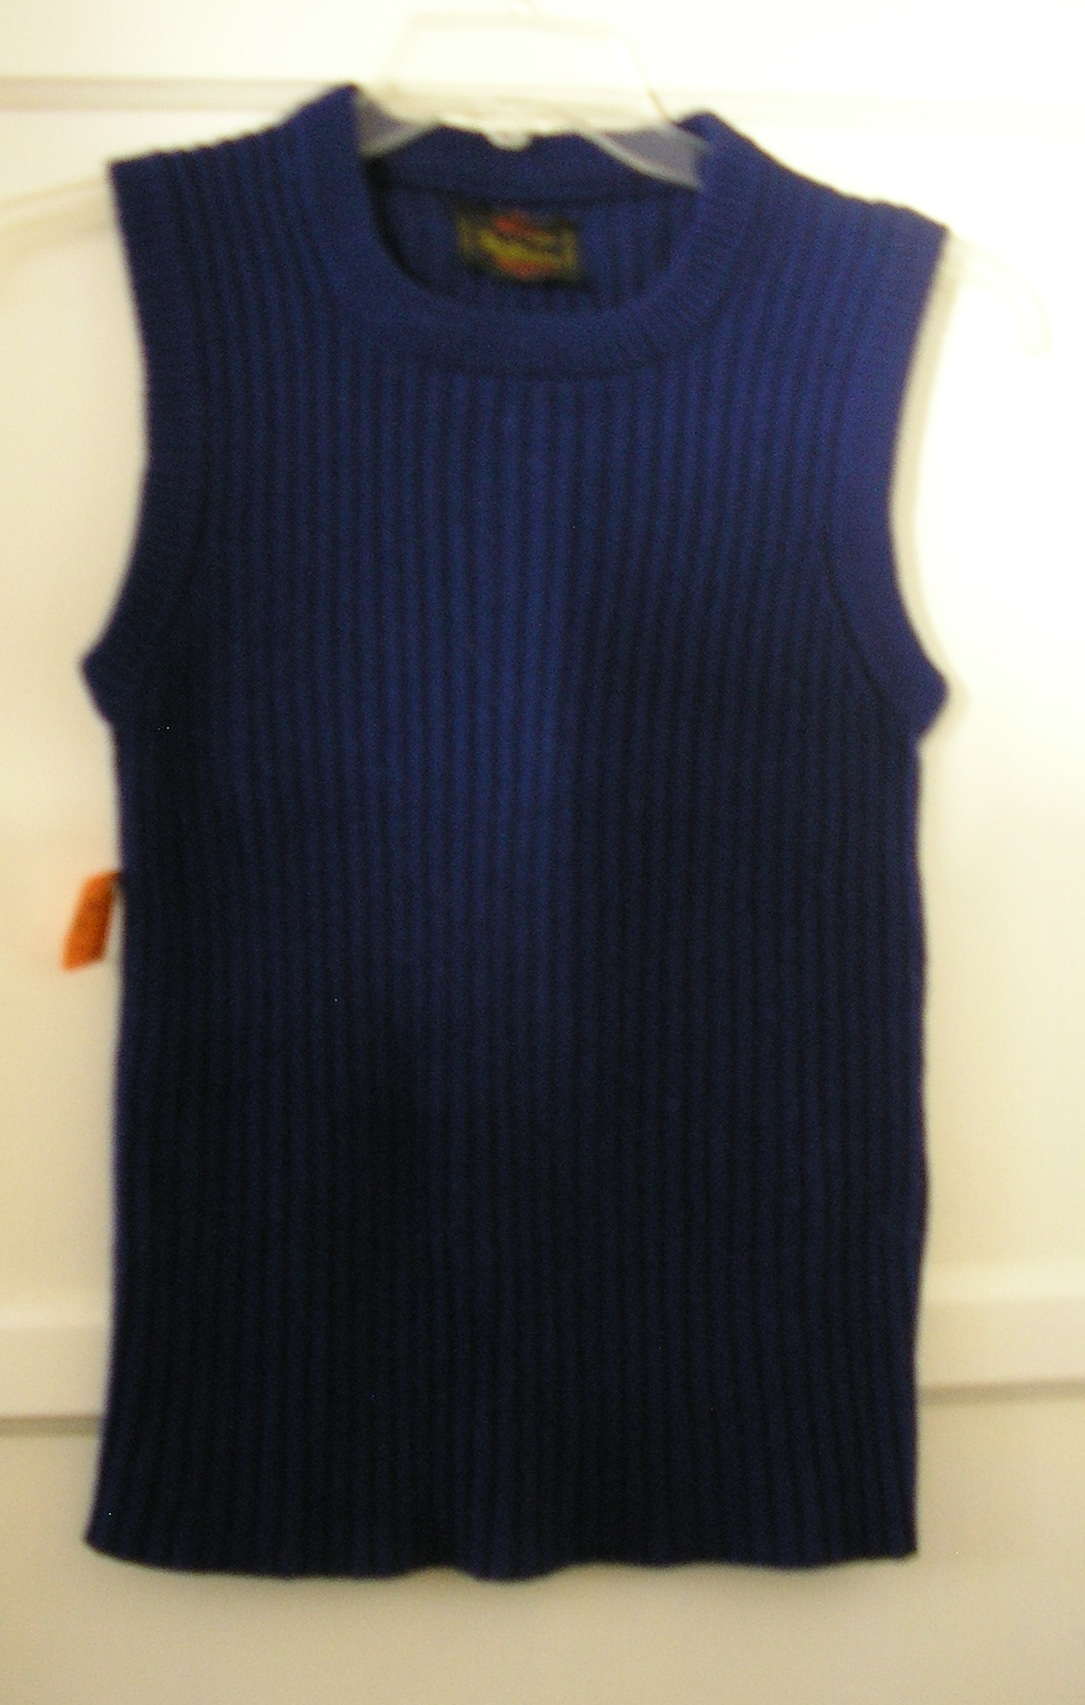 1970s groovy navy blue ribbed sweater vest size sm